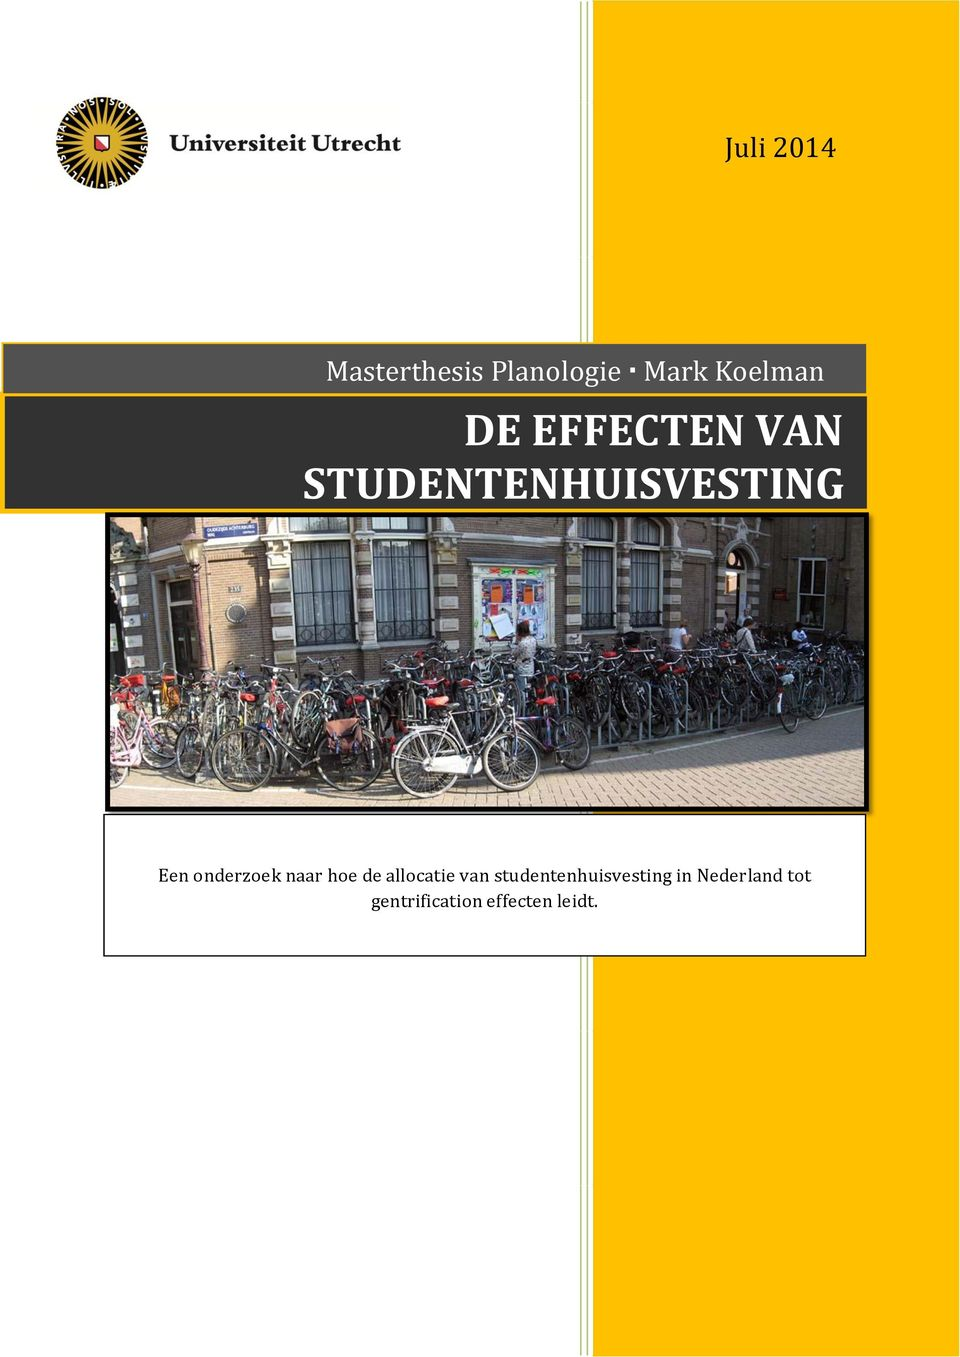 voorwoord thesis ugent This topic contains 0 replies, has 1 voice, and was last updated by preachmytilluto 1 month, 1 week ago author posts january 17, 2018 at 10:36 am #58490 preachmytillutoparticipant click here click here click here click here click here this amazing site, which includes experienced business for 9 years, is one of.